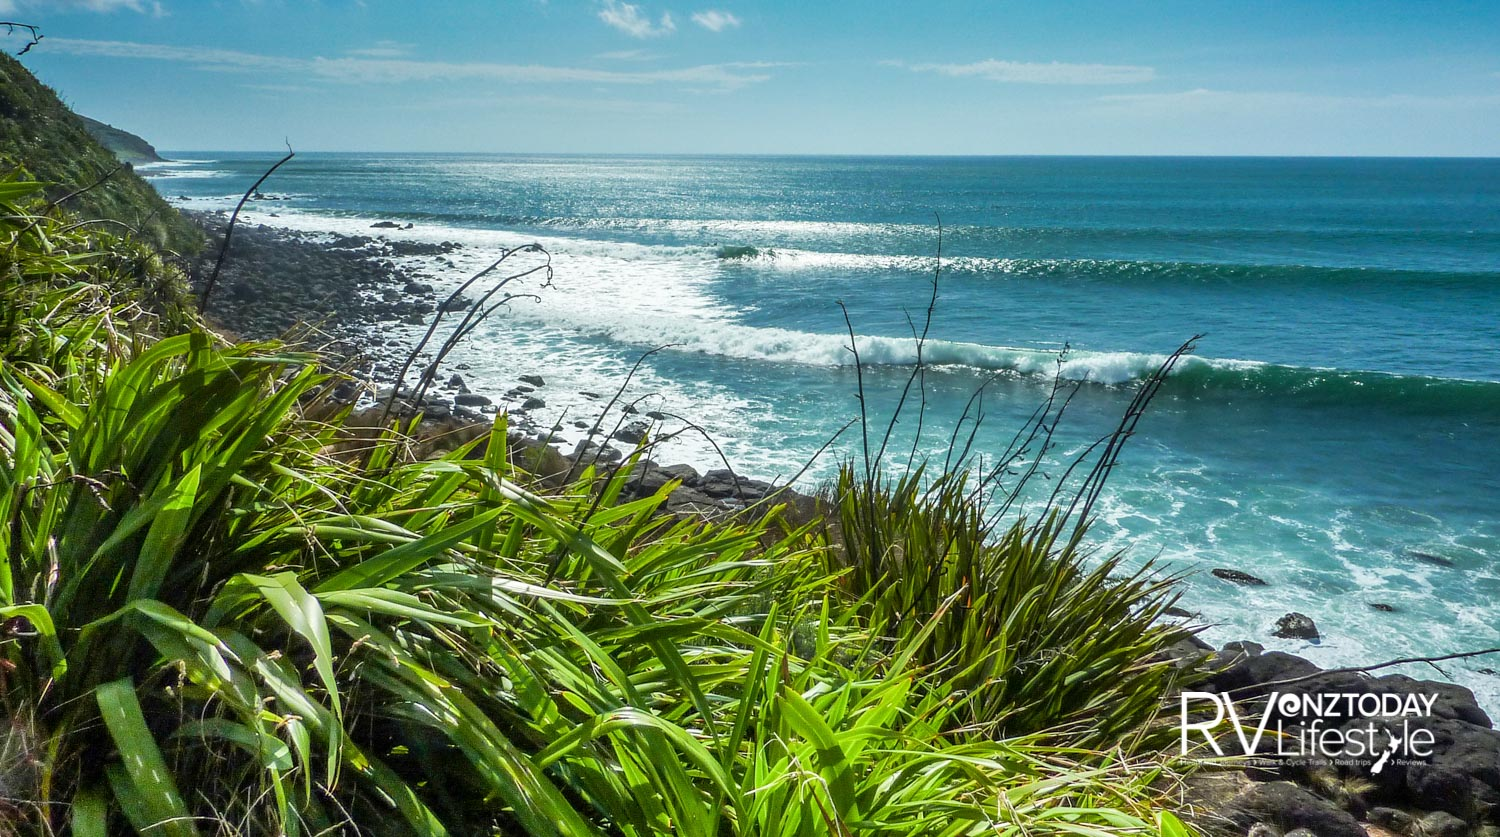 Awesome surf breaks at Indicators